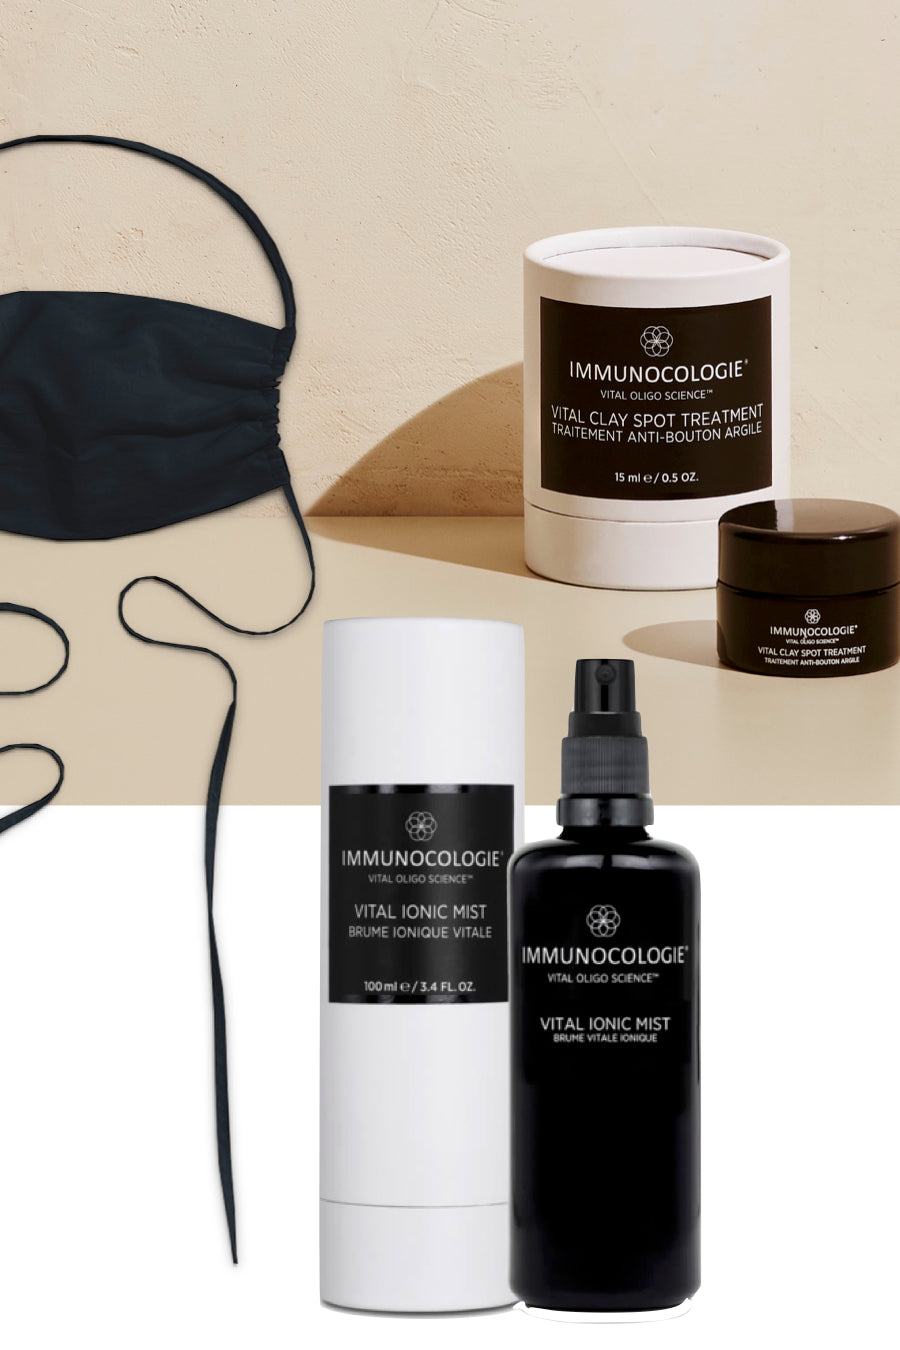 Immunocologie Maskne Protection Package + GIFT: Black Cotton Face Mask